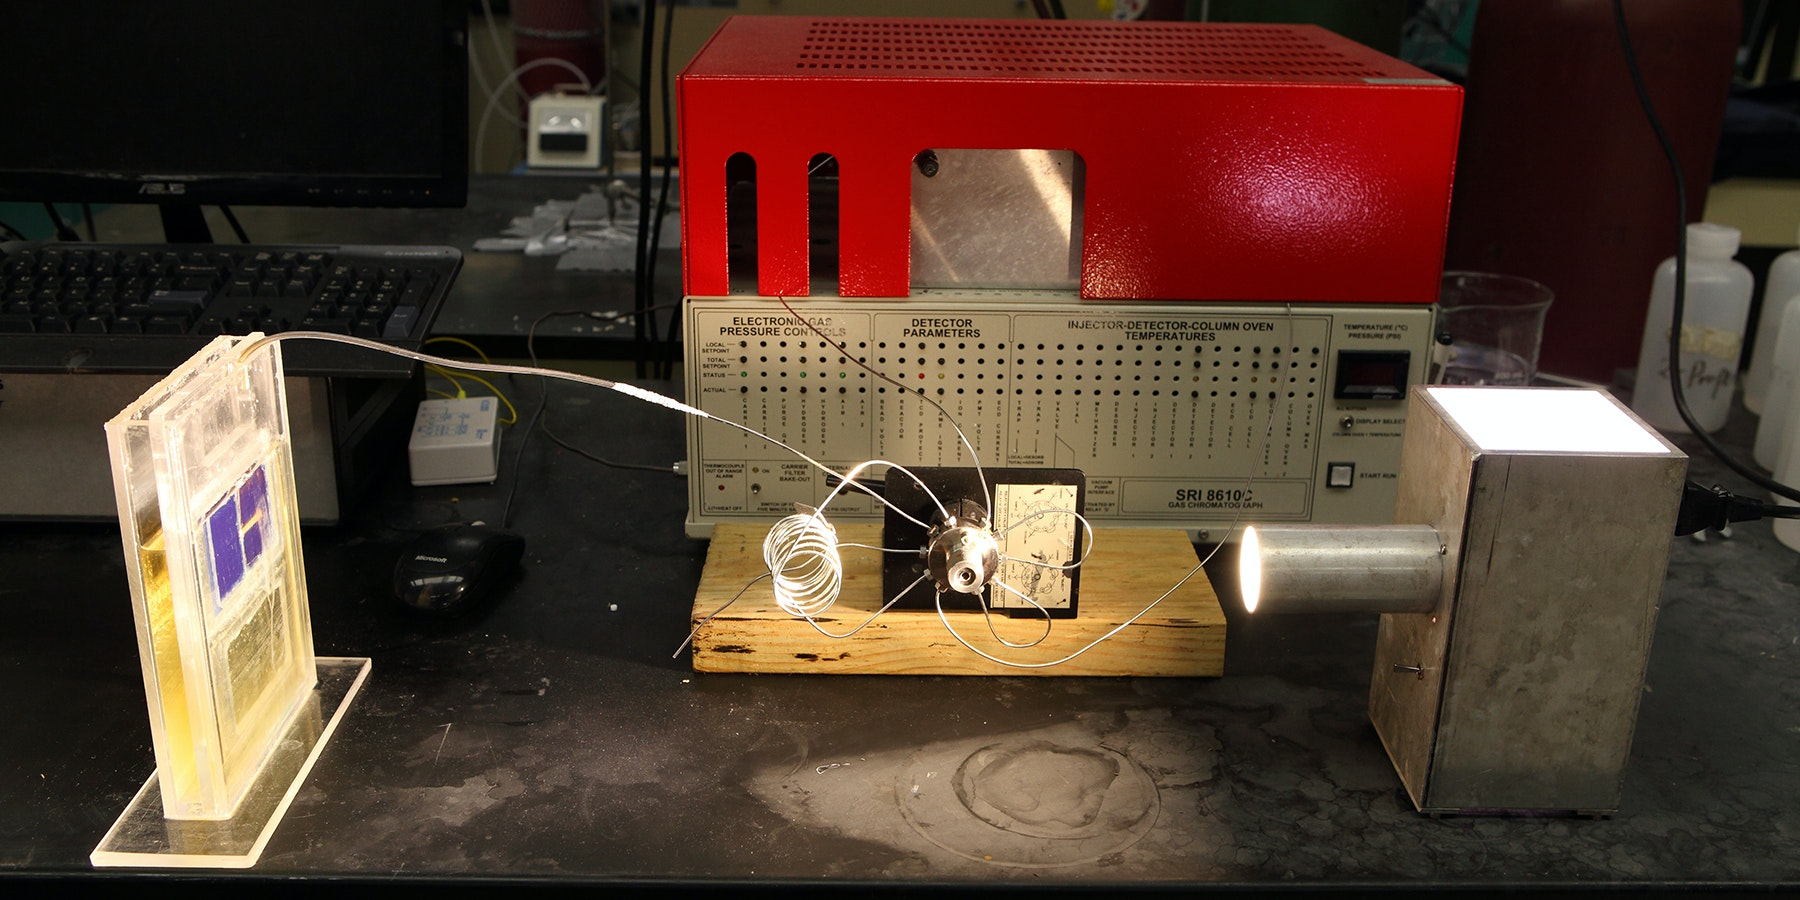 This lil guy could provide both food and oxygen for astronauts on the Mars missions.